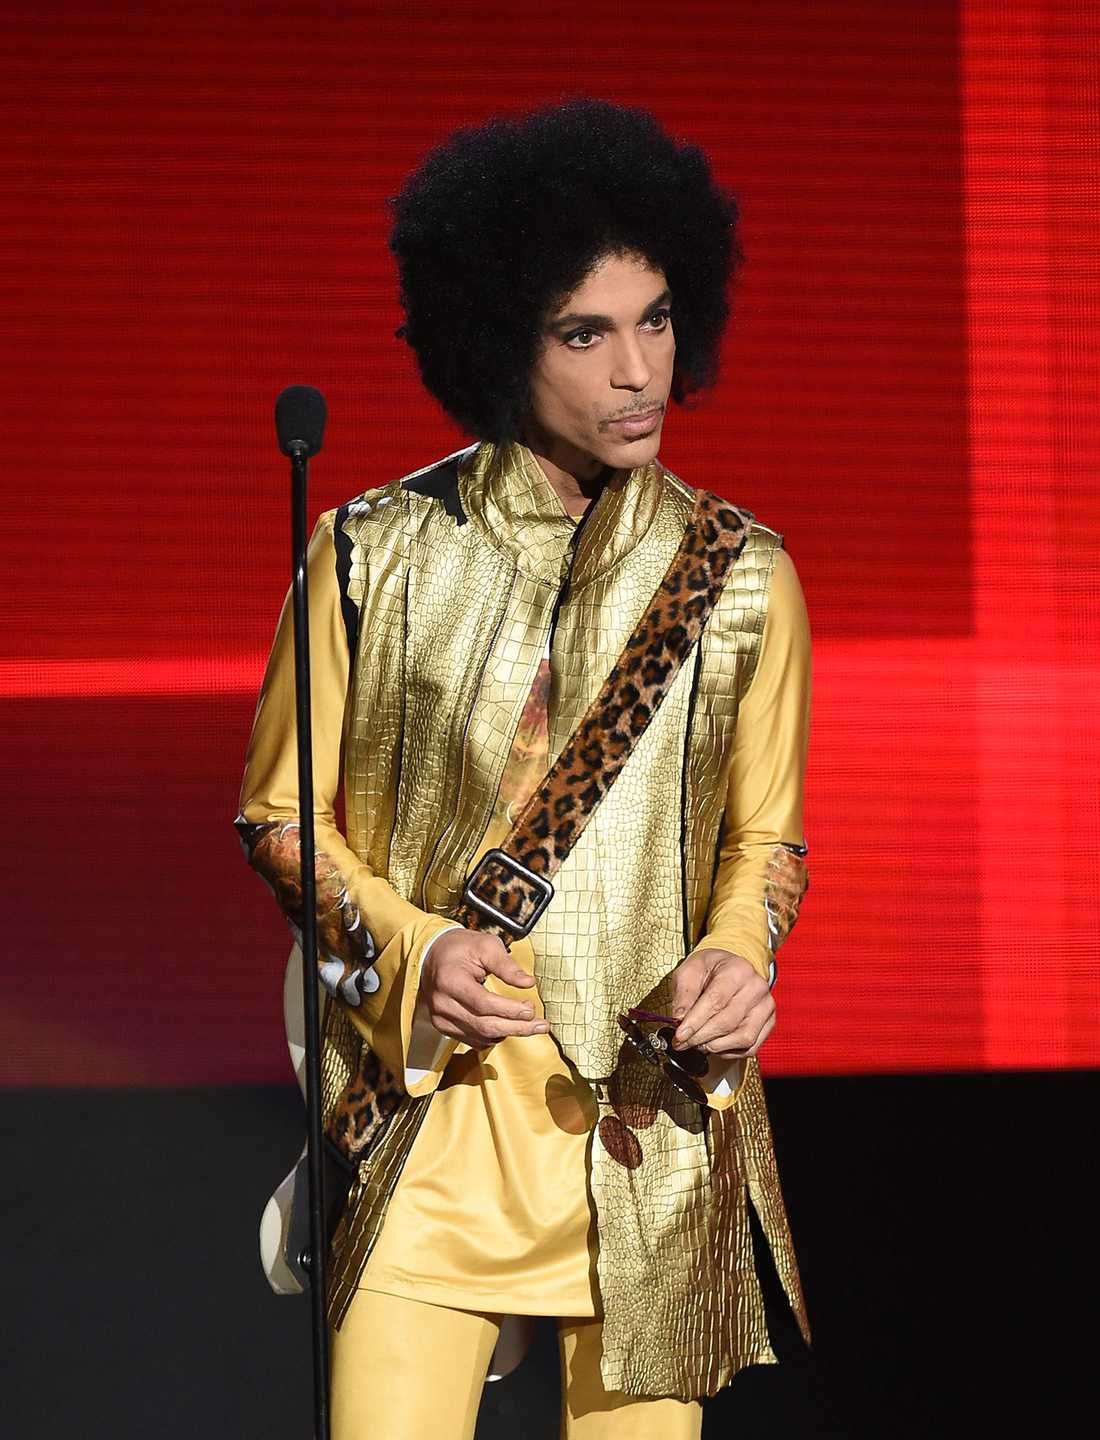 Prince på American Music Awards i Los Angeles november 2015